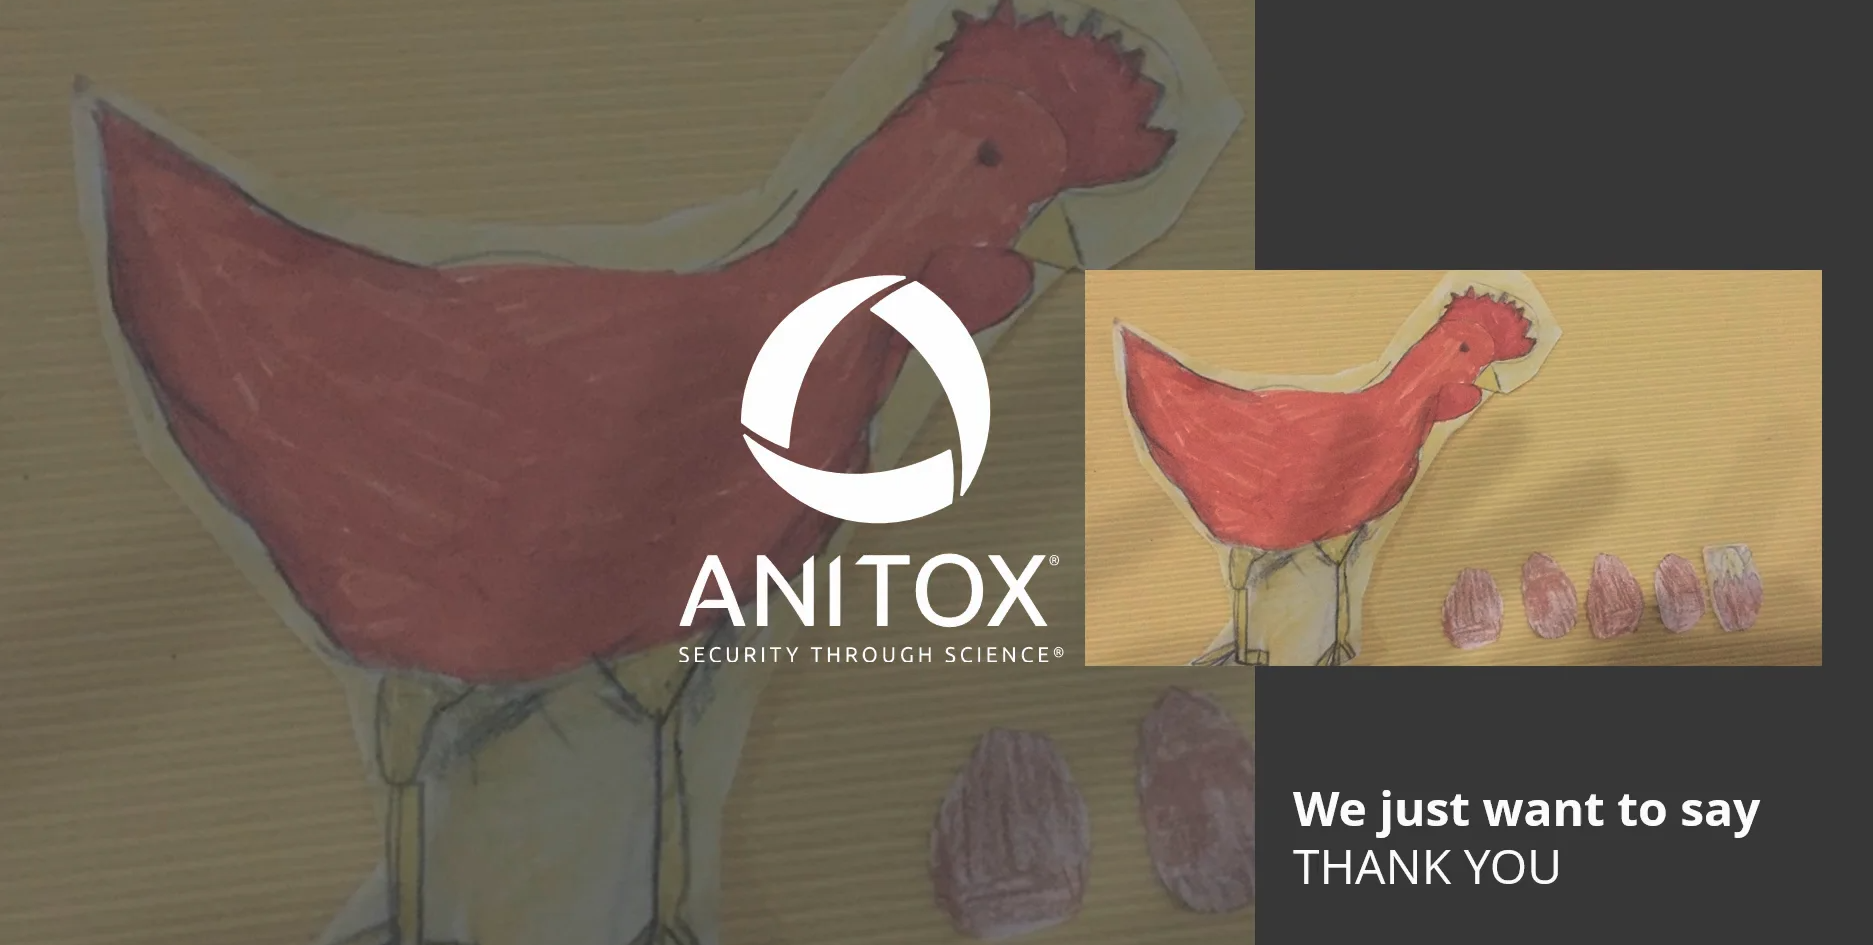 Thank you Anitox Artists